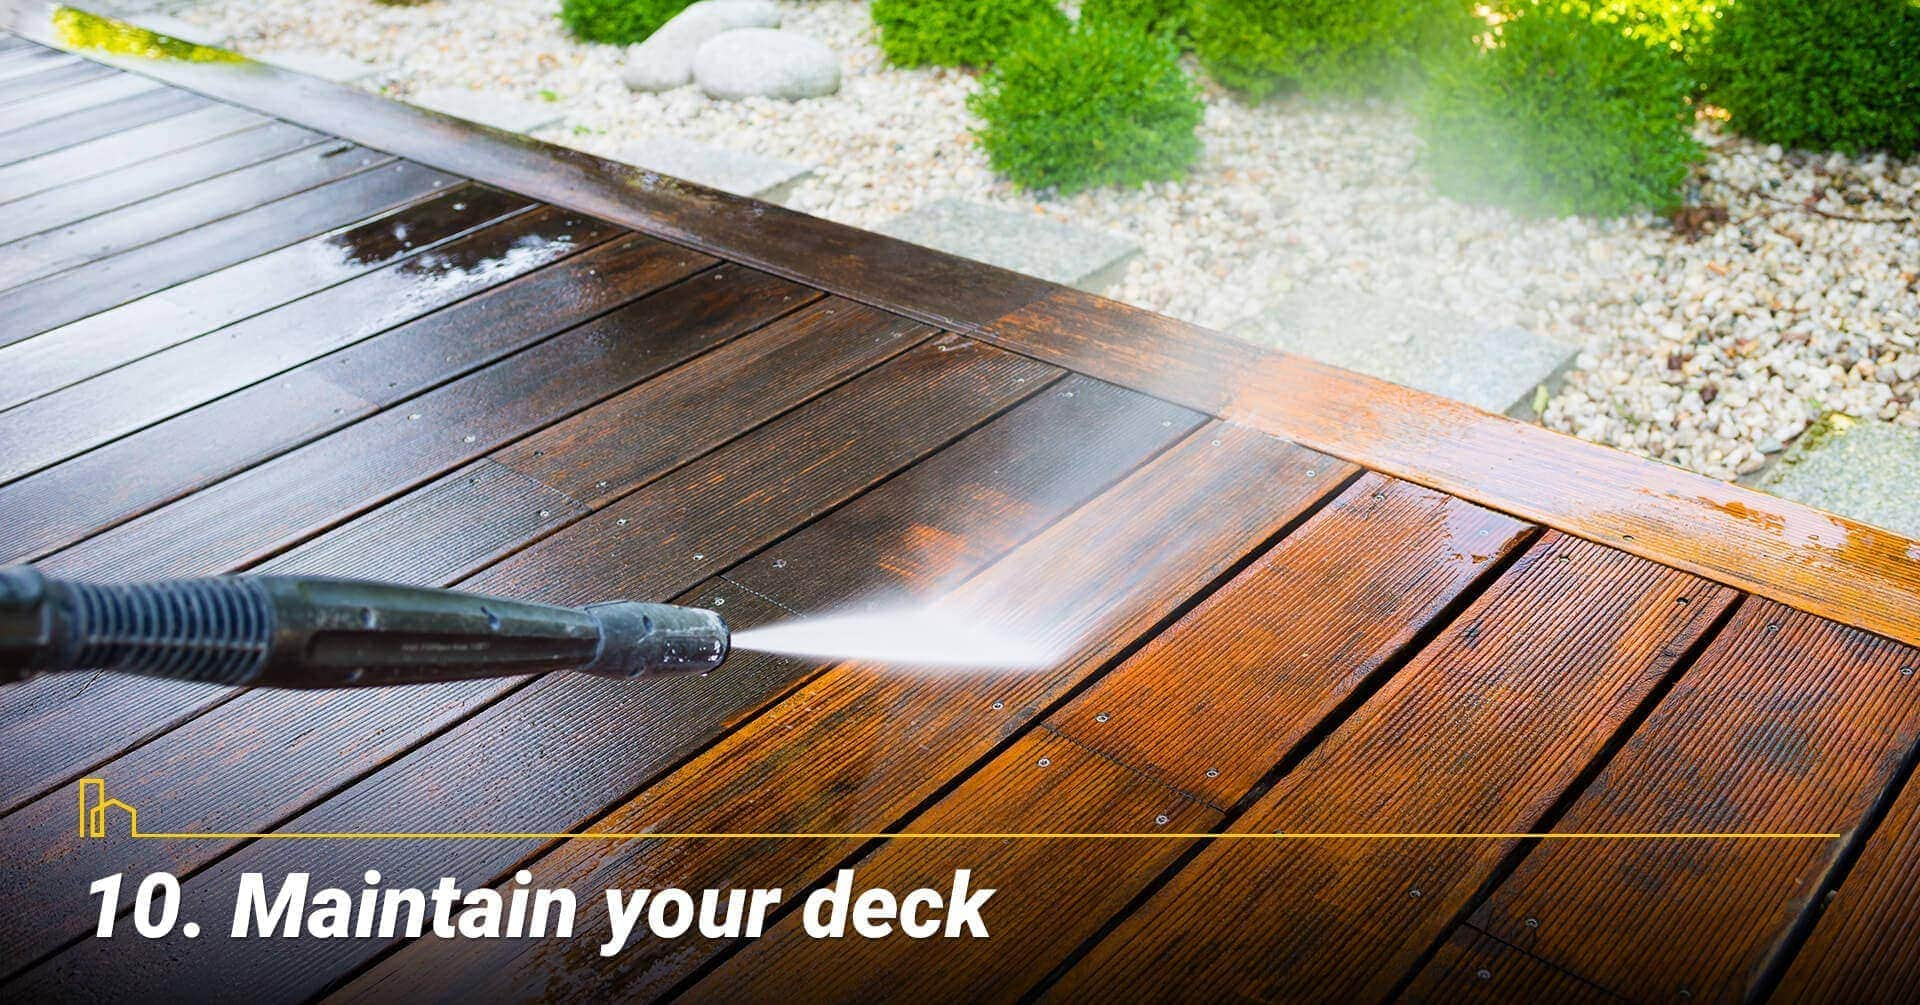 Maintain your deck, clean your deck